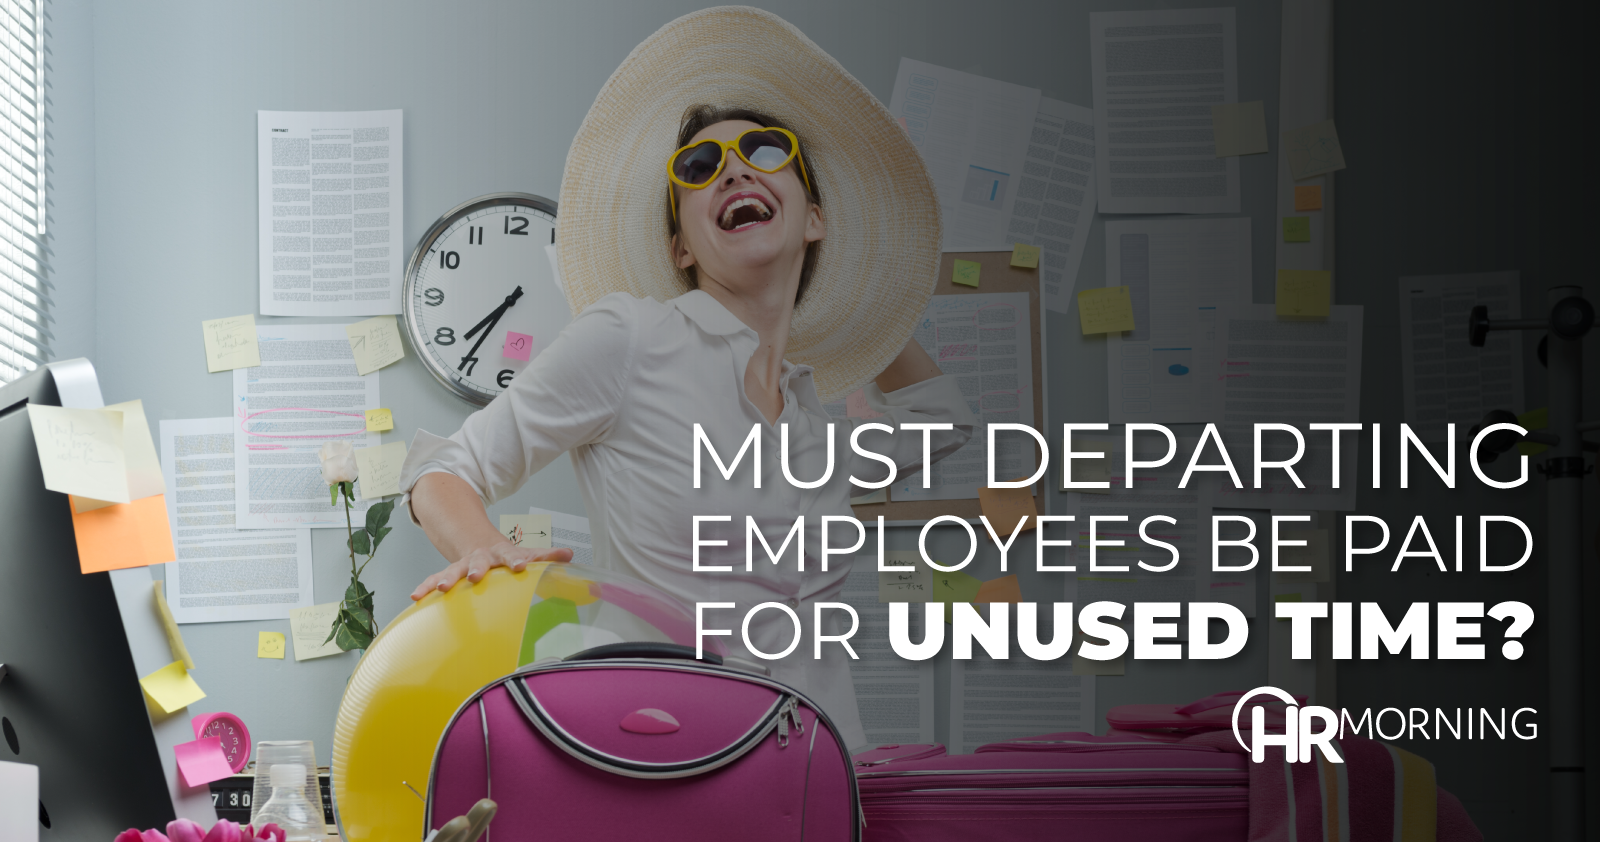 must departing employee be paid for unused time